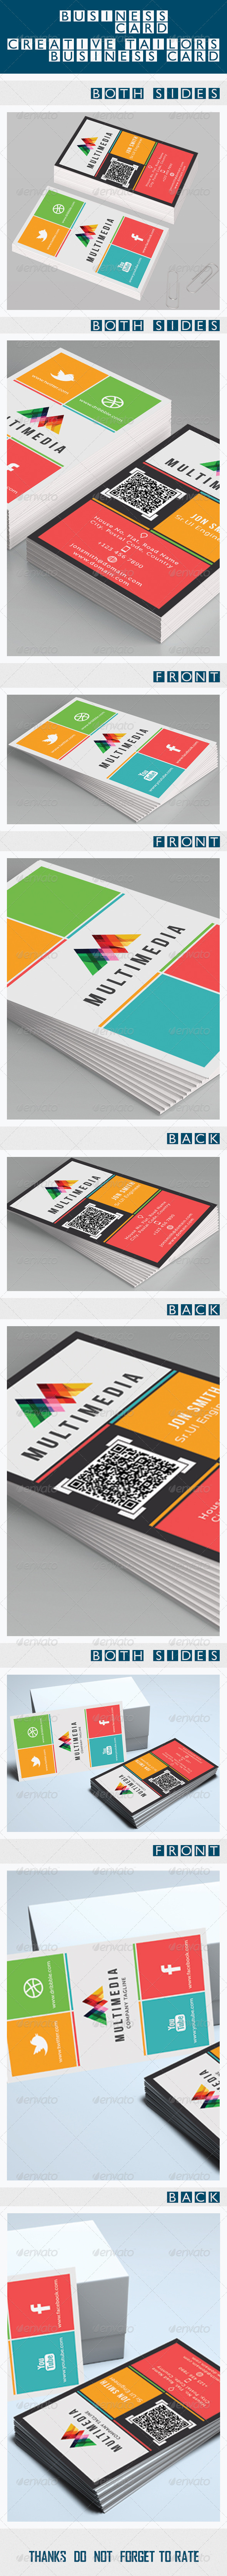 Metro Design Business Card - Creative Business Cards